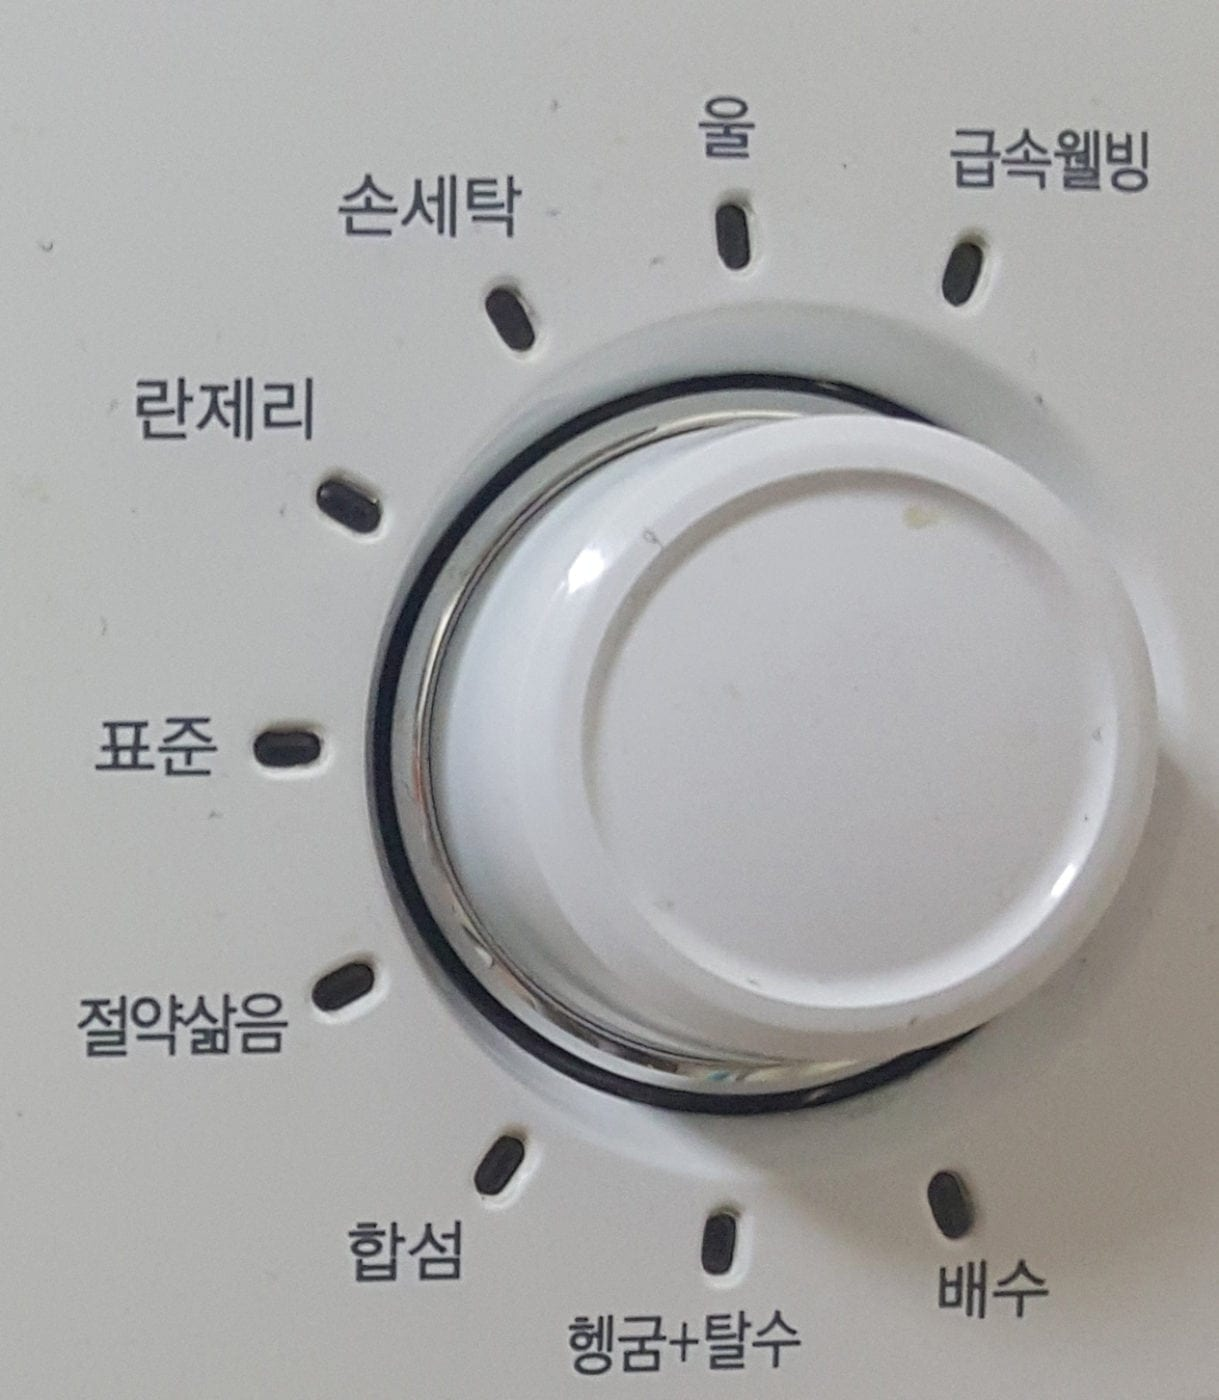 How To Use A Korean Laundry Machine | 10 Magazine